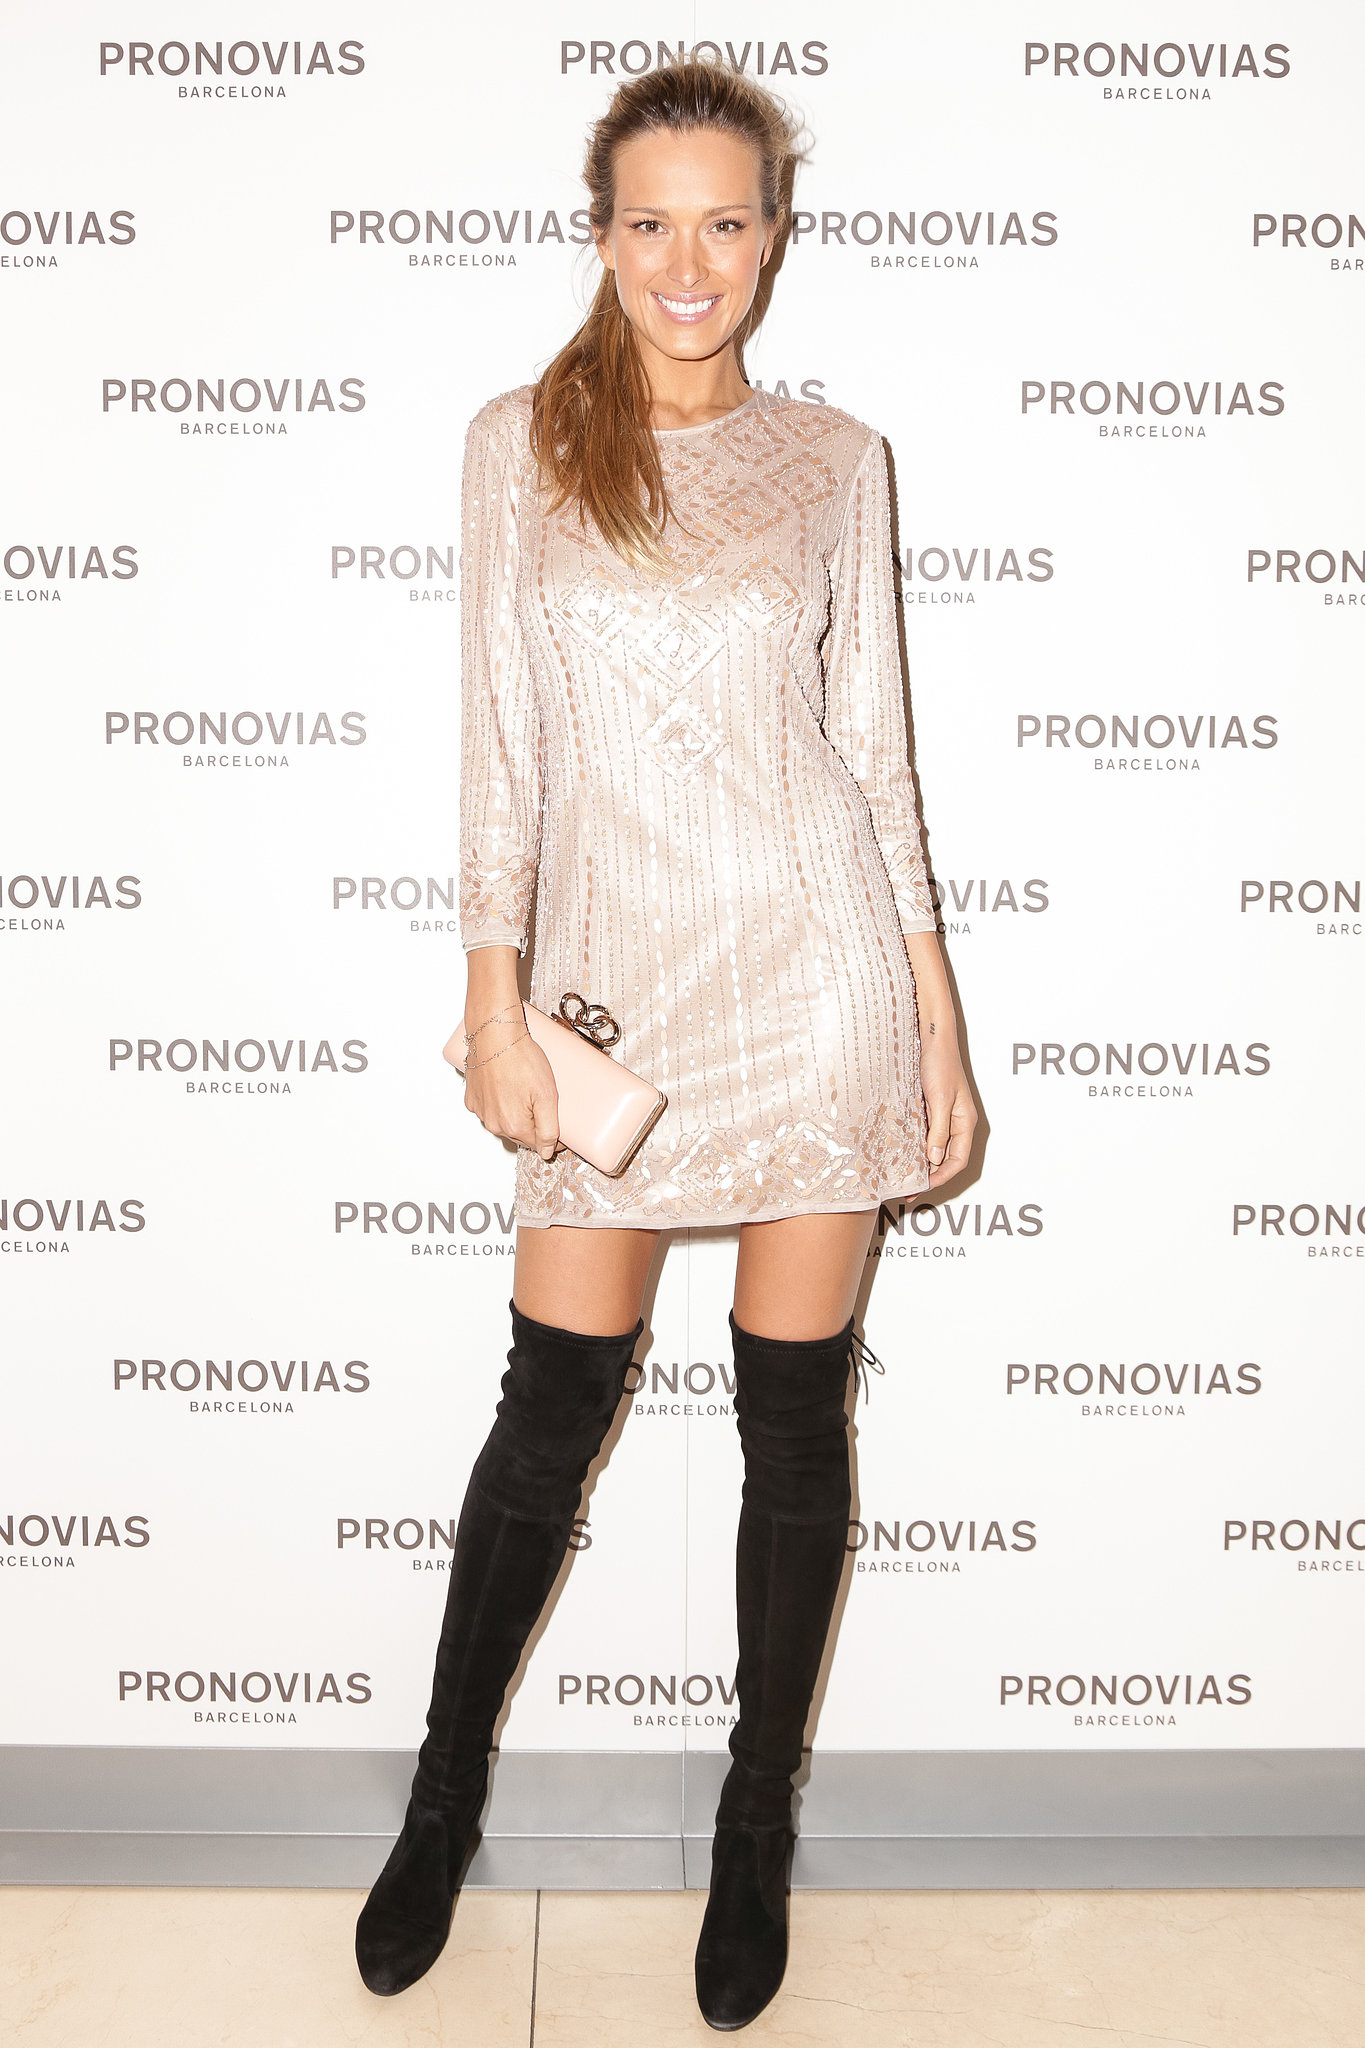 Petra Nemcova at the Pronovias Atelier fashion show.